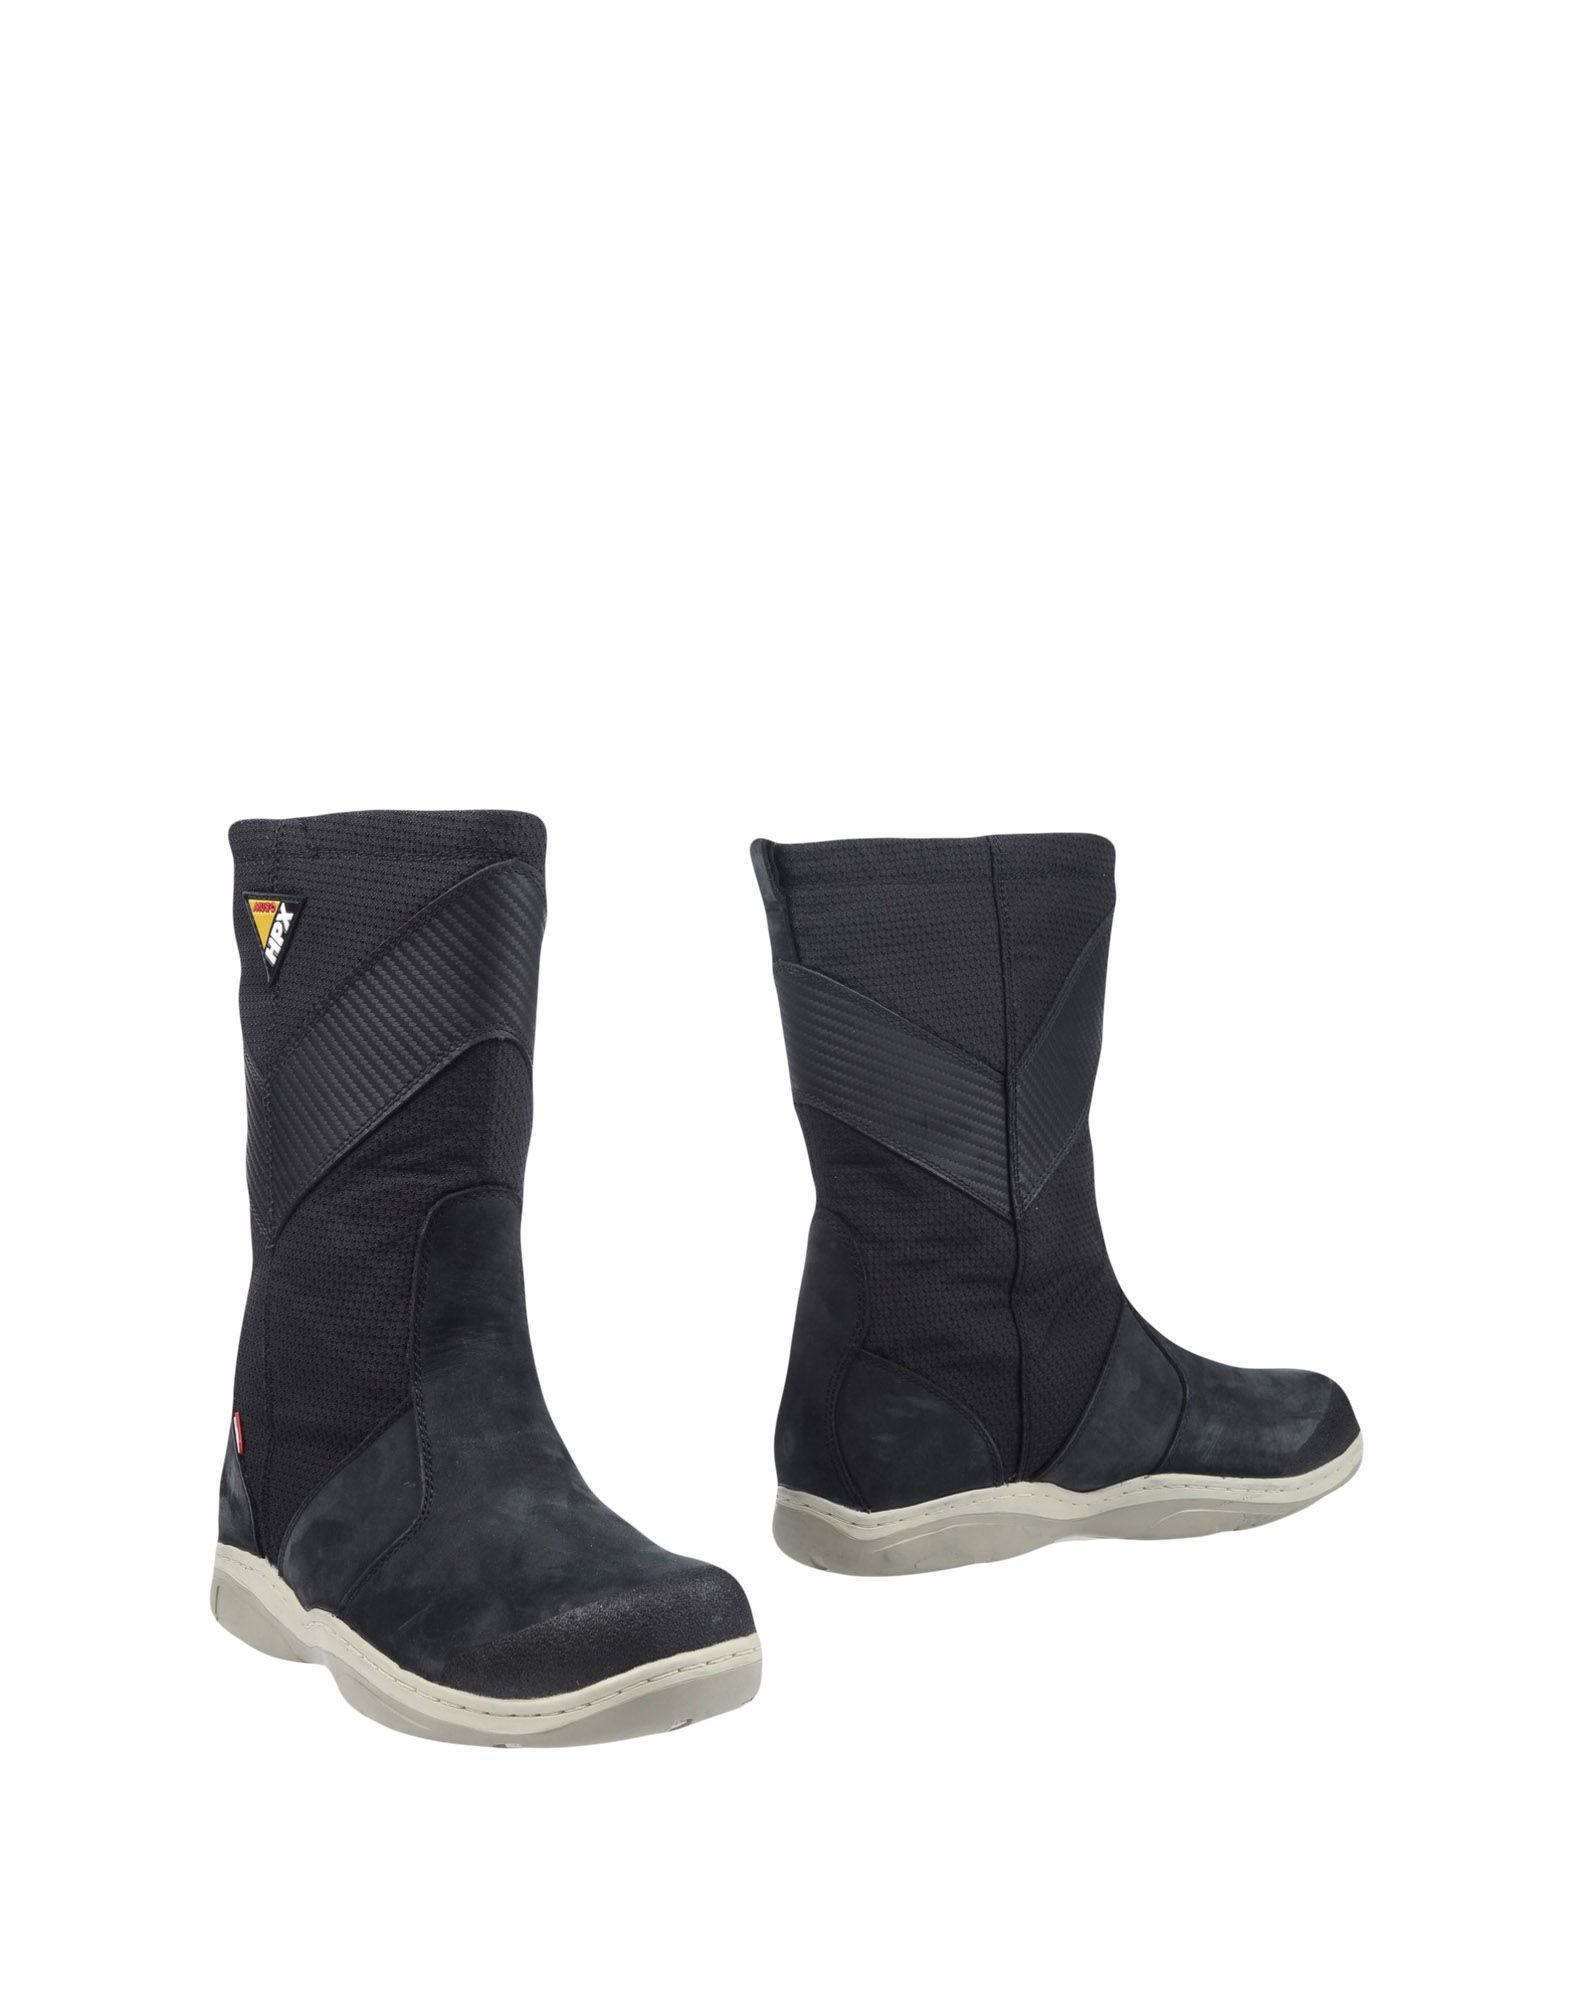 Musto Boots - Men Musto Boots online 11300786RE on  Canada - 11300786RE online ec2bc2